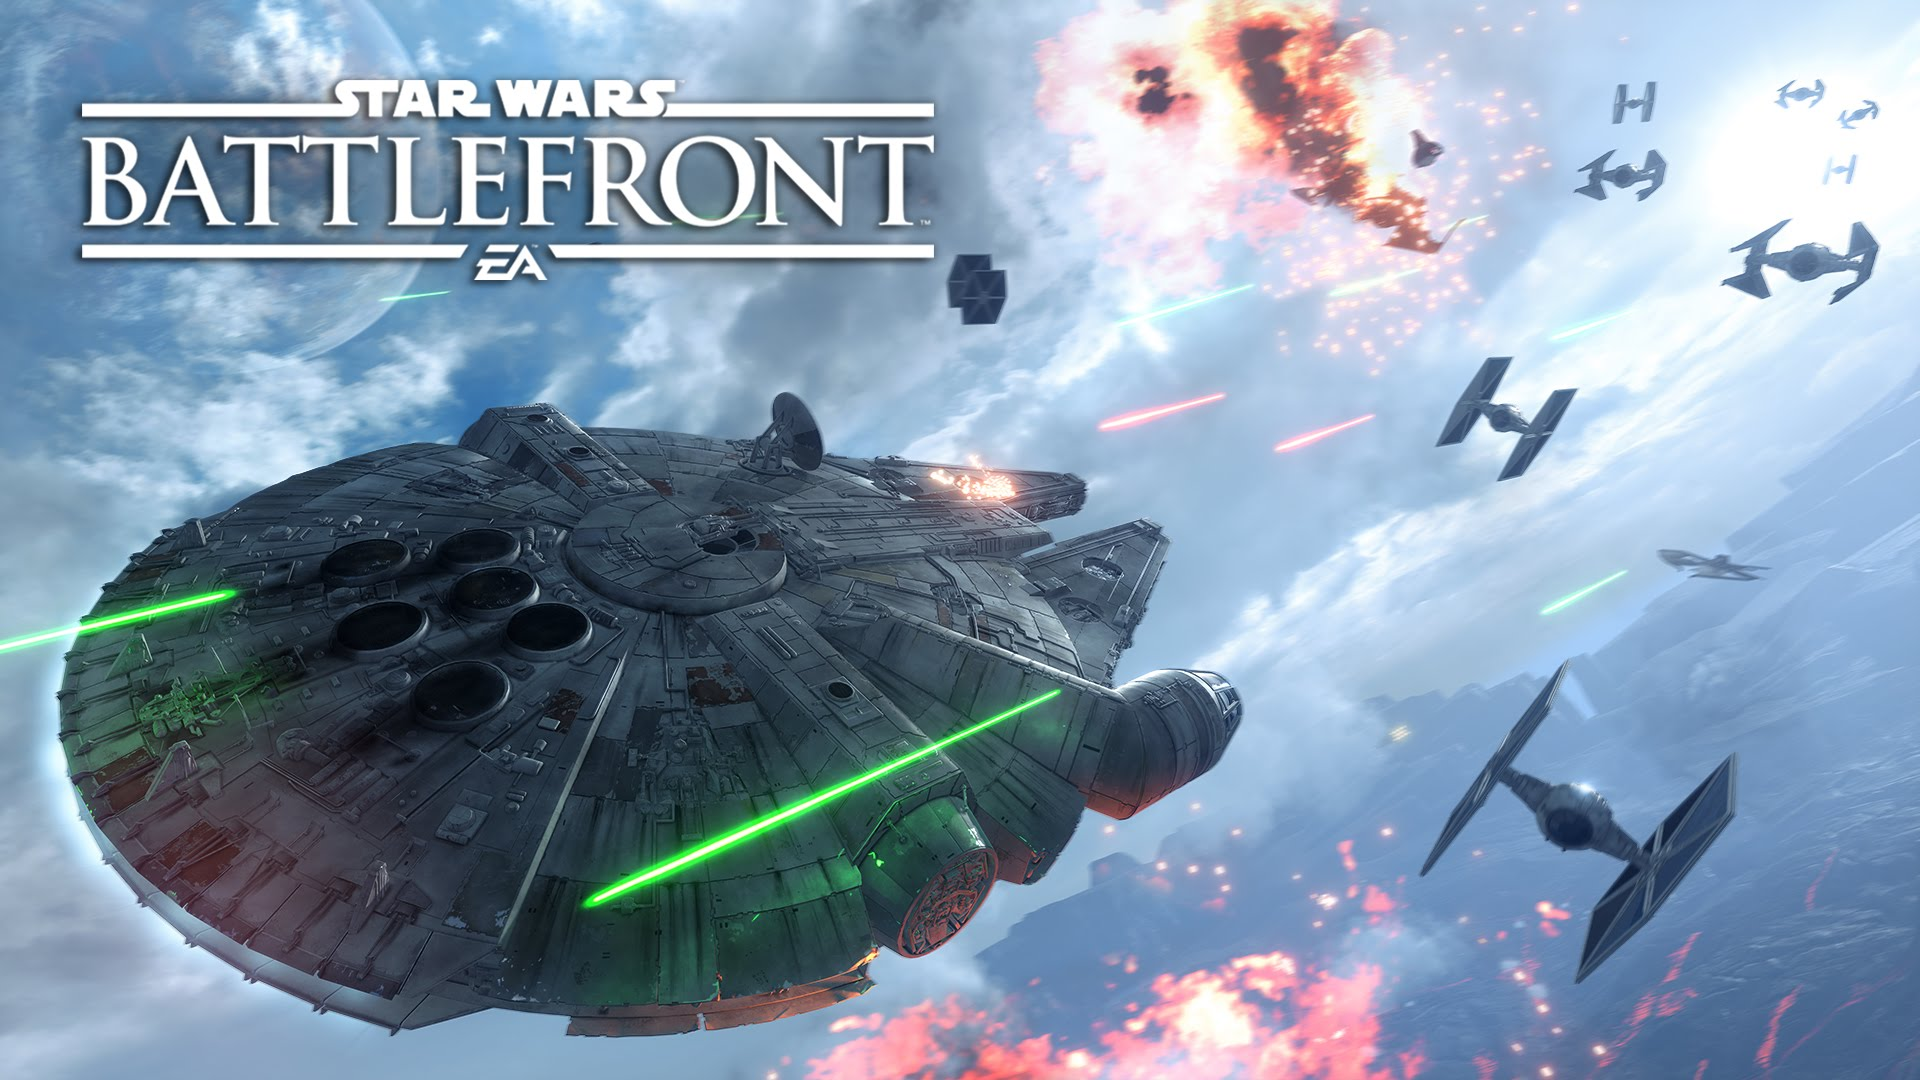 Star Wars: Battlefront - Fighter Squadron Mode Gameplay Trailer